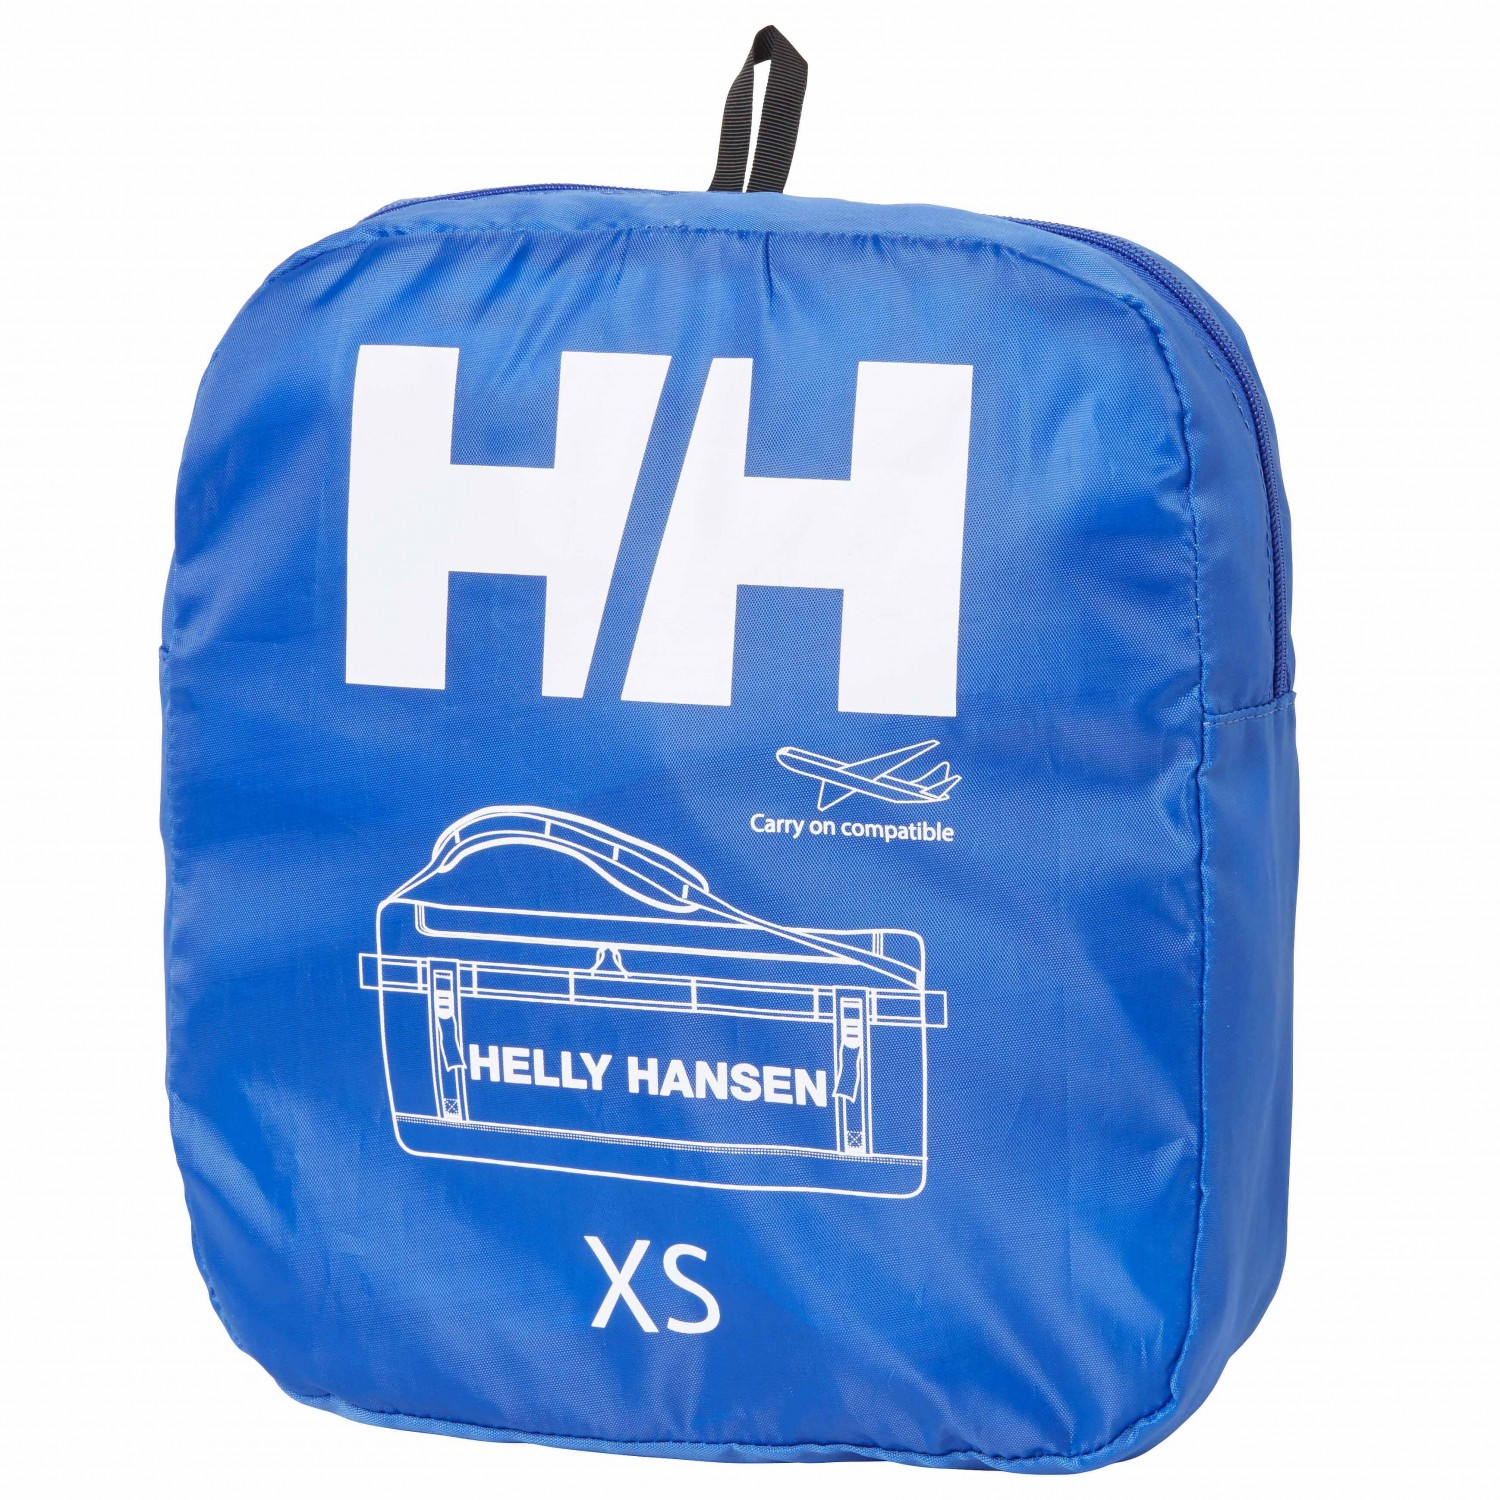 Helly Hansen HH New Classic Duffel Bag - Luggage   Buy online ... de3a9be6d8